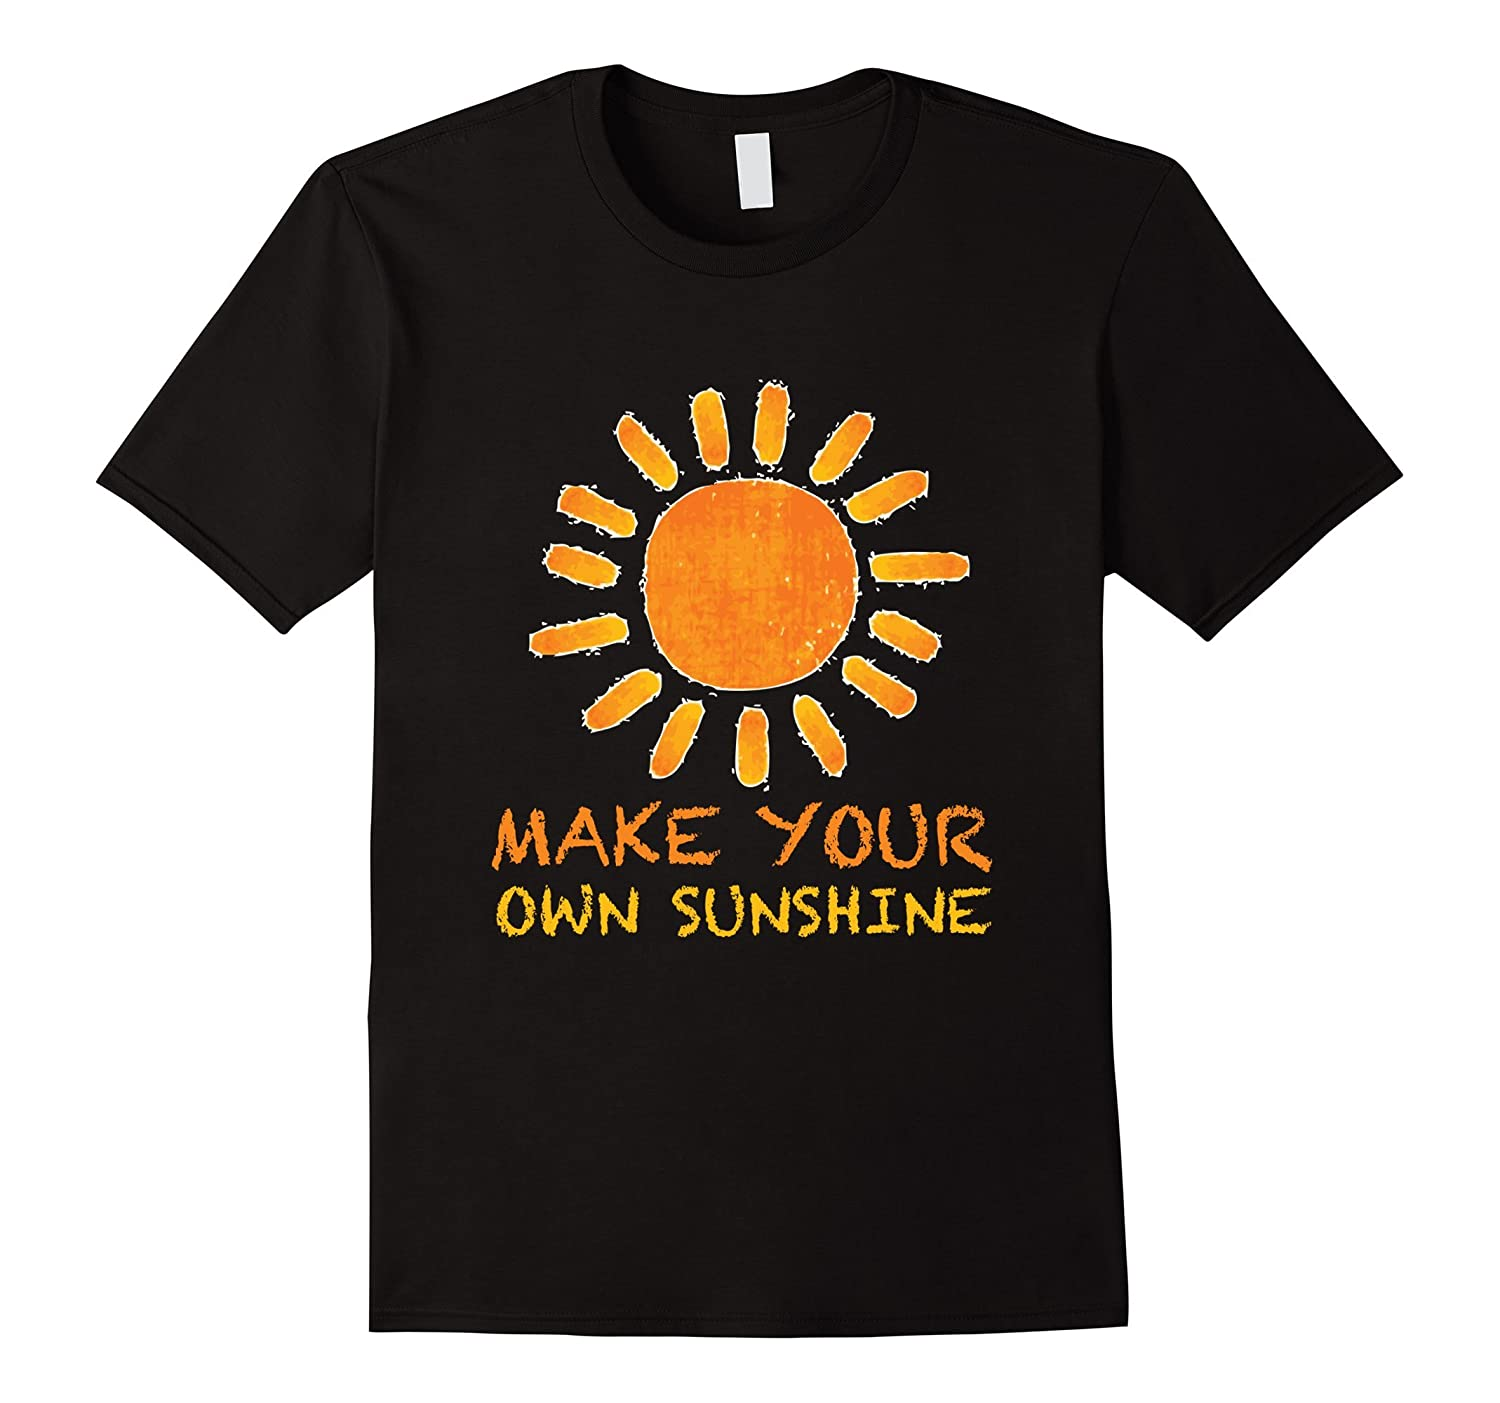 Make your own sunshine t shirt inspirational tee rt Build your own t shirts